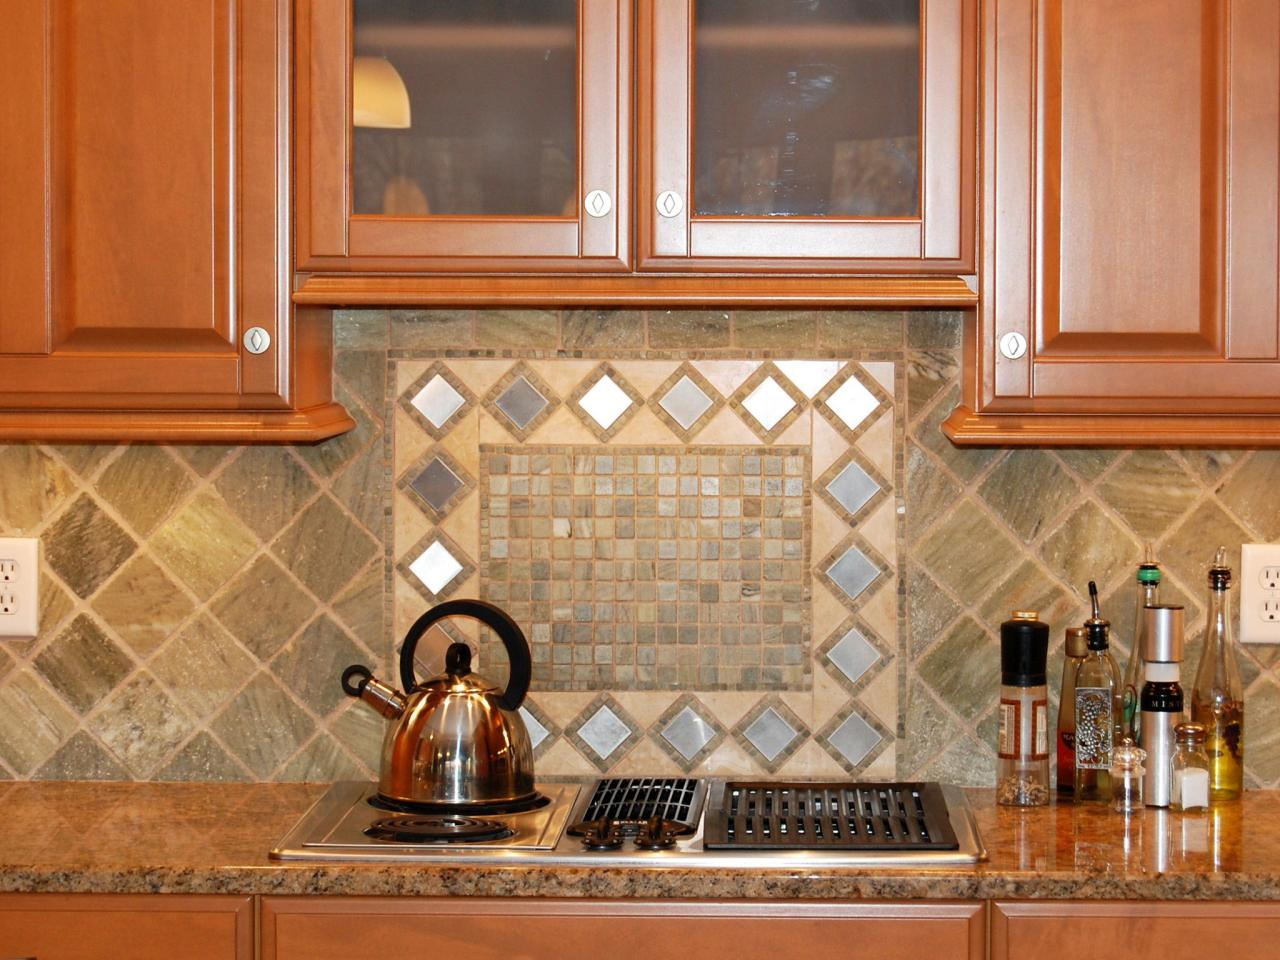 Kitchen Backsplash Designs Adorable Kitchen Backsplash Design Ideas  Hgtv Decorating Design